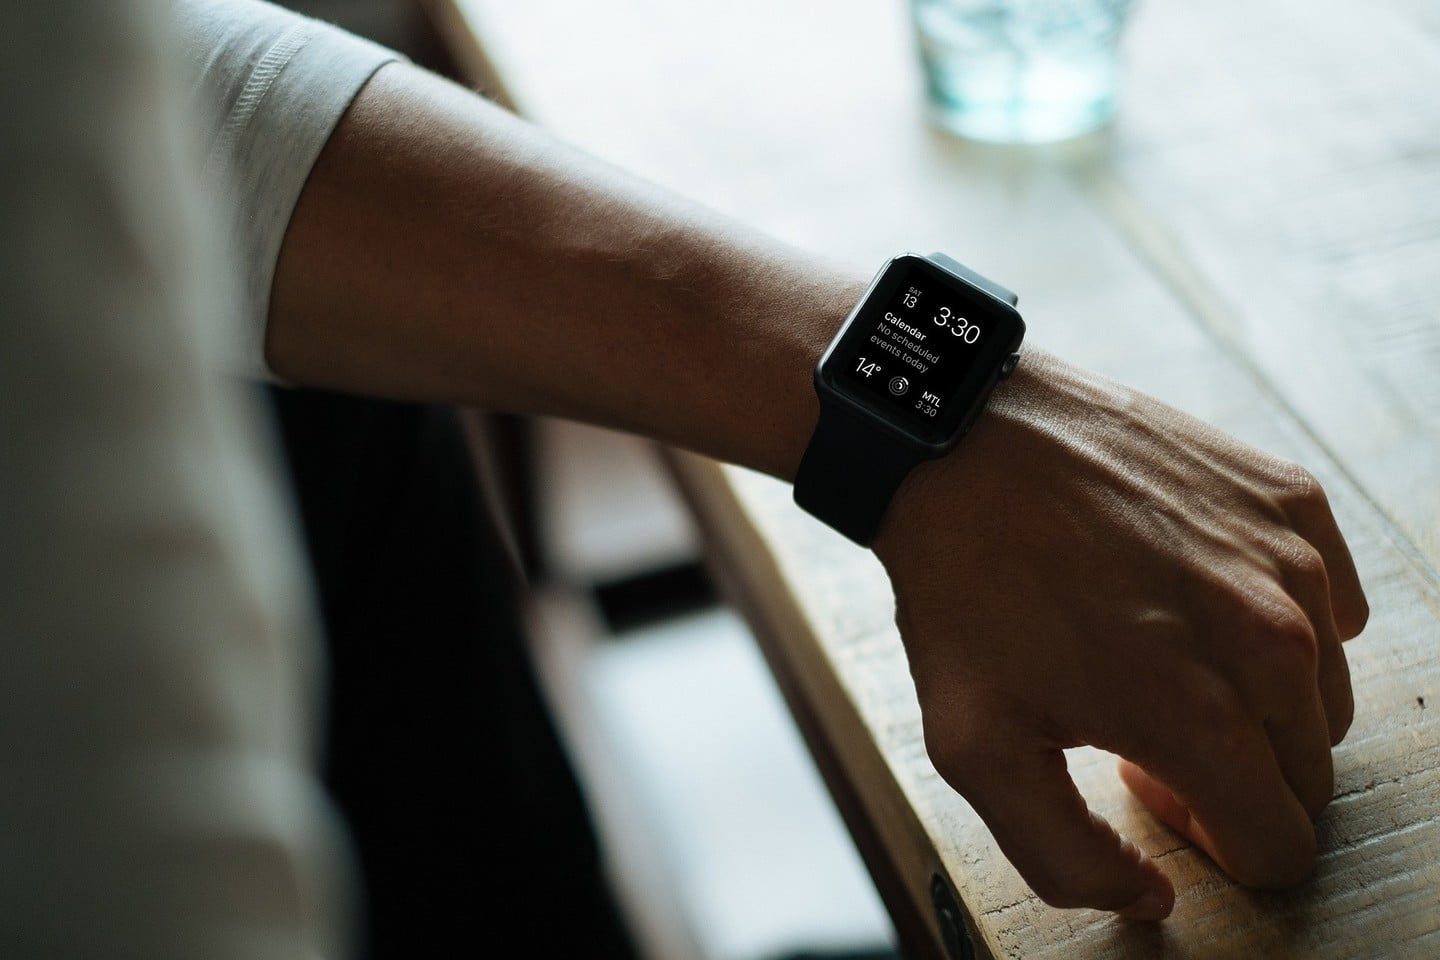 Apple Watch dominates wearables